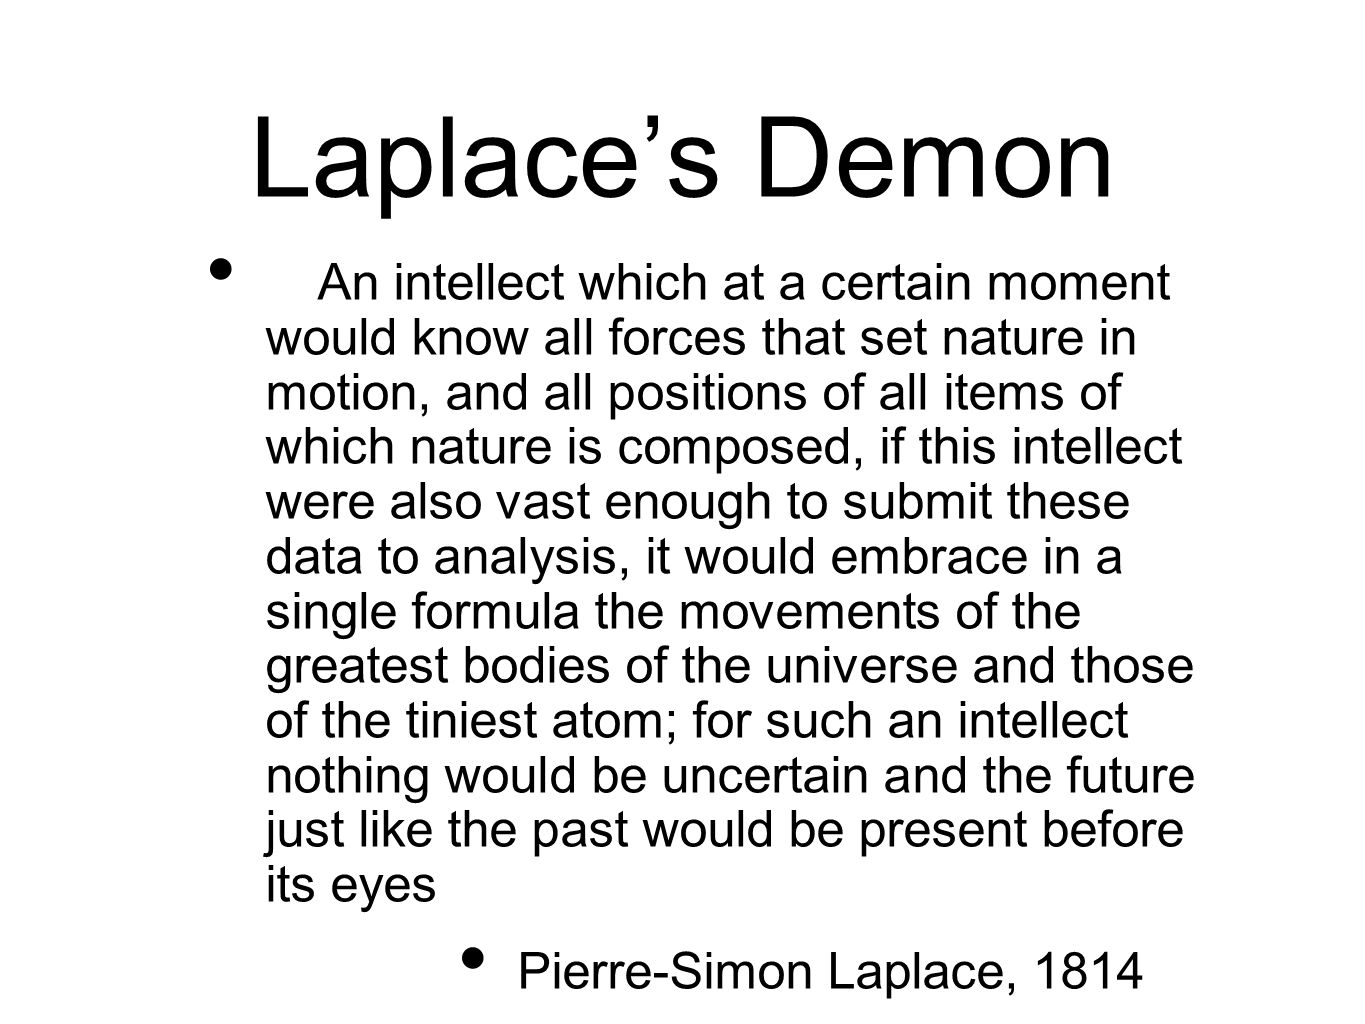 Laplaces Scrutability Thesis If a Laplacenean intellect knew all the Laplacean truths, then for any hypothesis p it could entertain, it could know whether p.